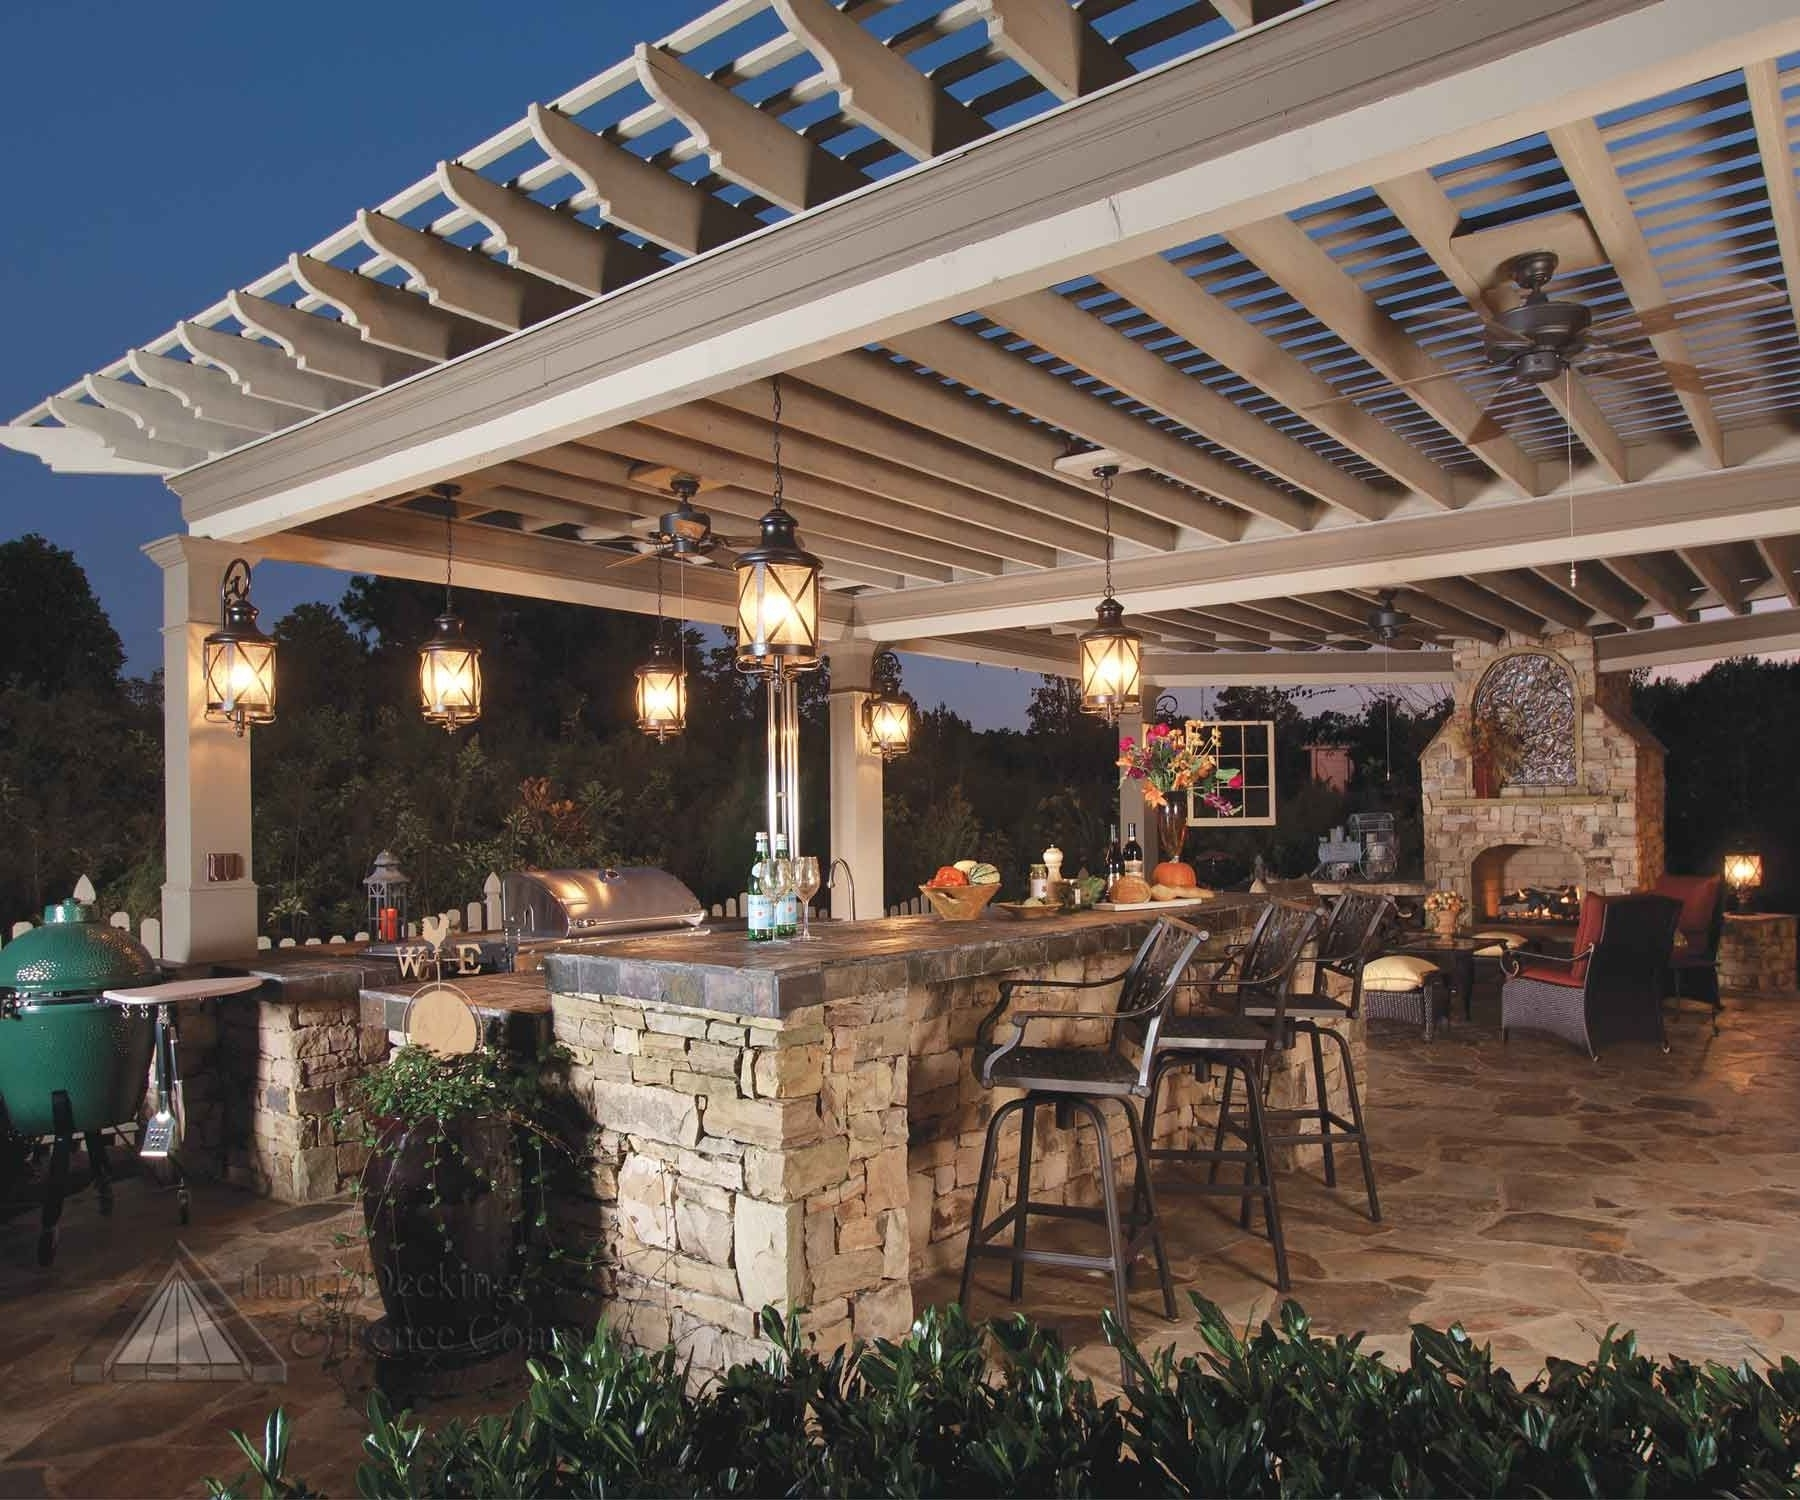 Outdoor And Patio: Outdoor Hanging Lighting In Black Lamp Case For With Best And Newest Homemade Outdoor Hanging Lights (View 11 of 20)